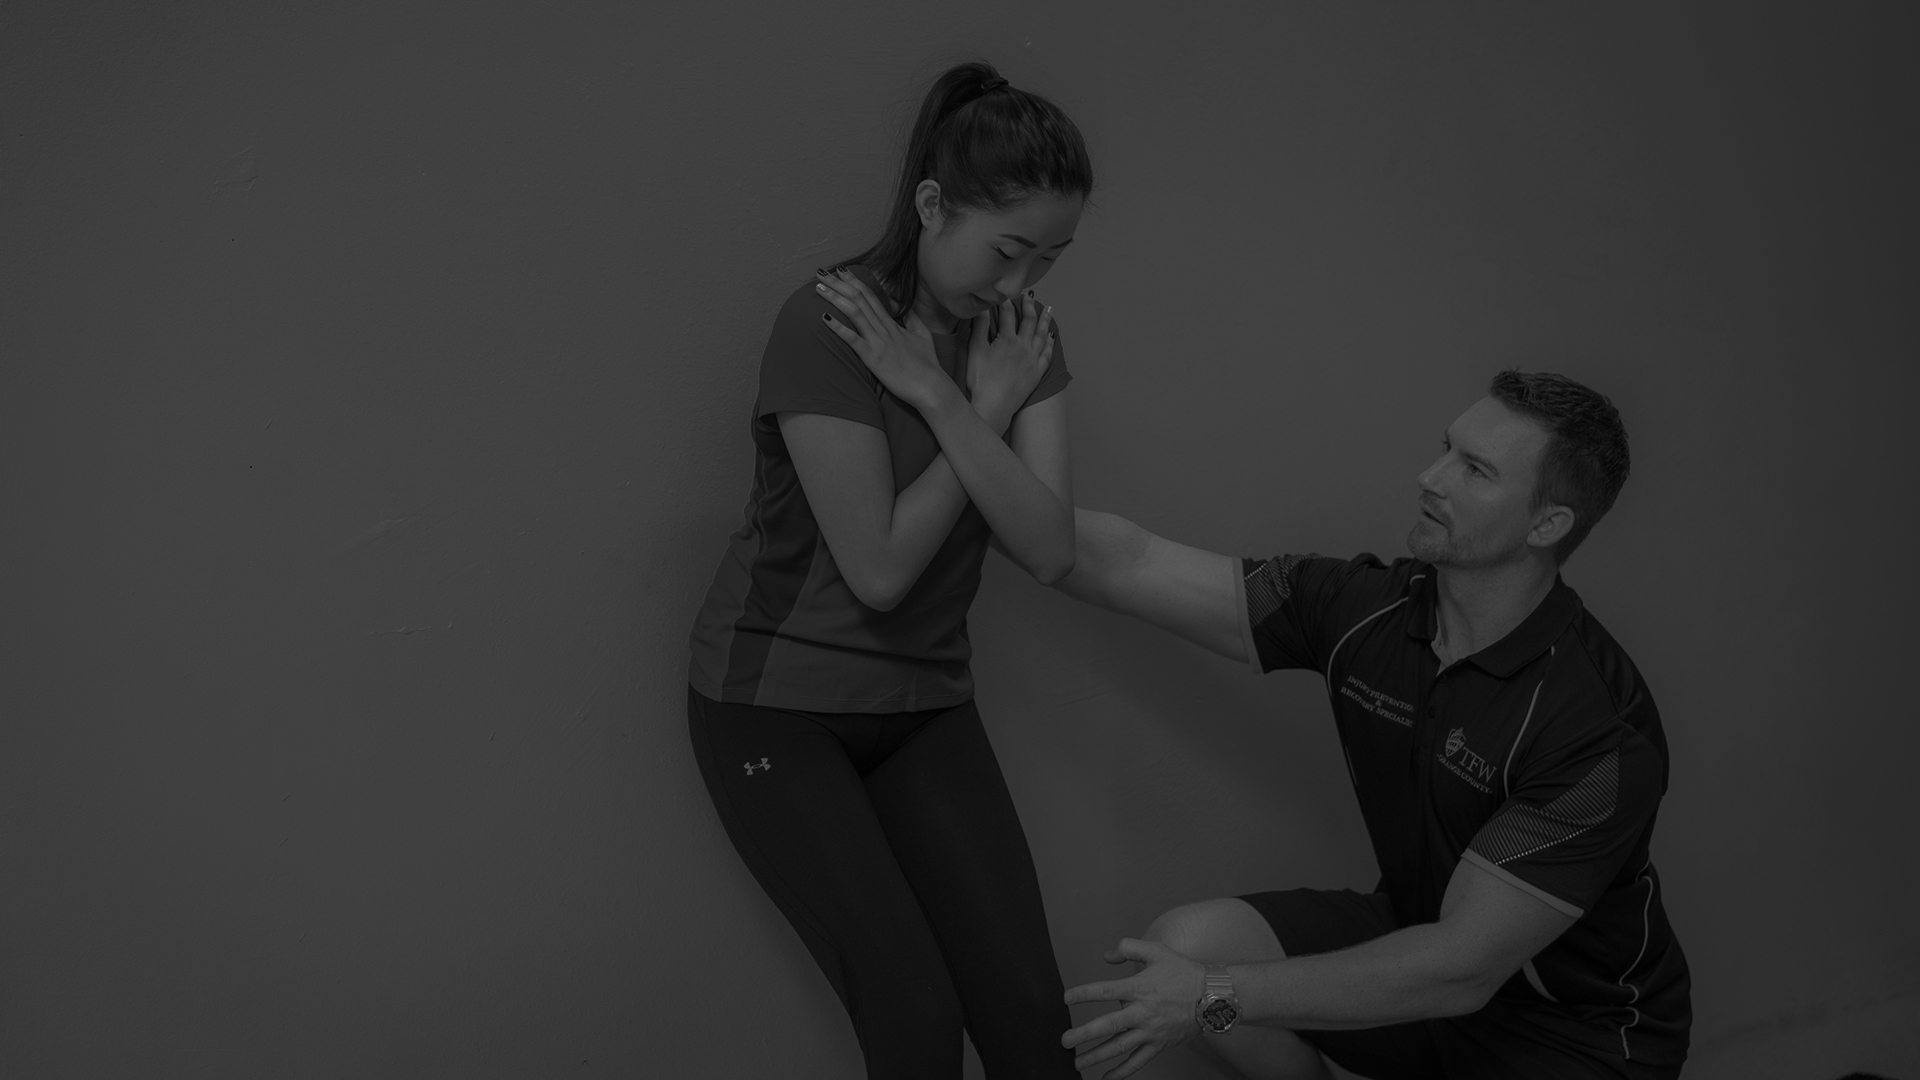 Body Reset/Recovery - we help you Get your mobility back so that you can move with ease and live pain-free with our specialized injury recovery program.LEARN MORE →